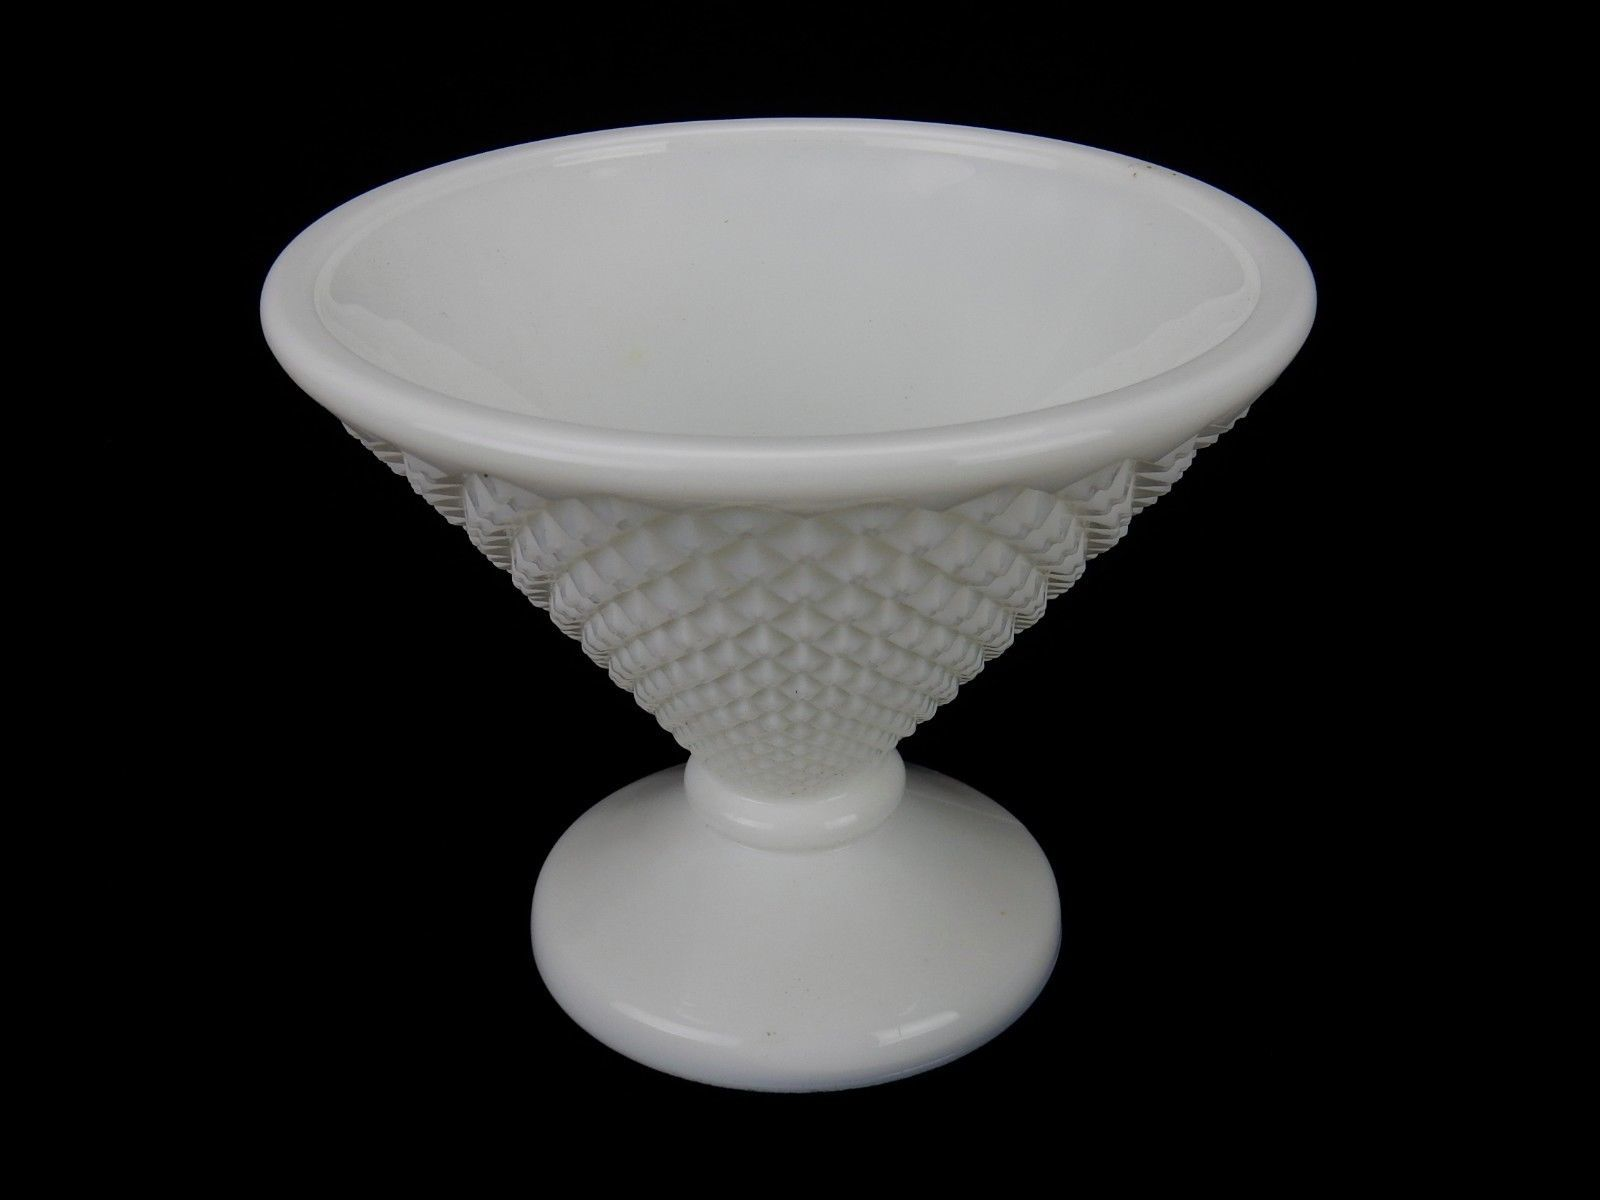 Primary image for Vintage Westmoreland Tapered Candy Dish, Graduated Diamond Cut Milk Glass, 1950s